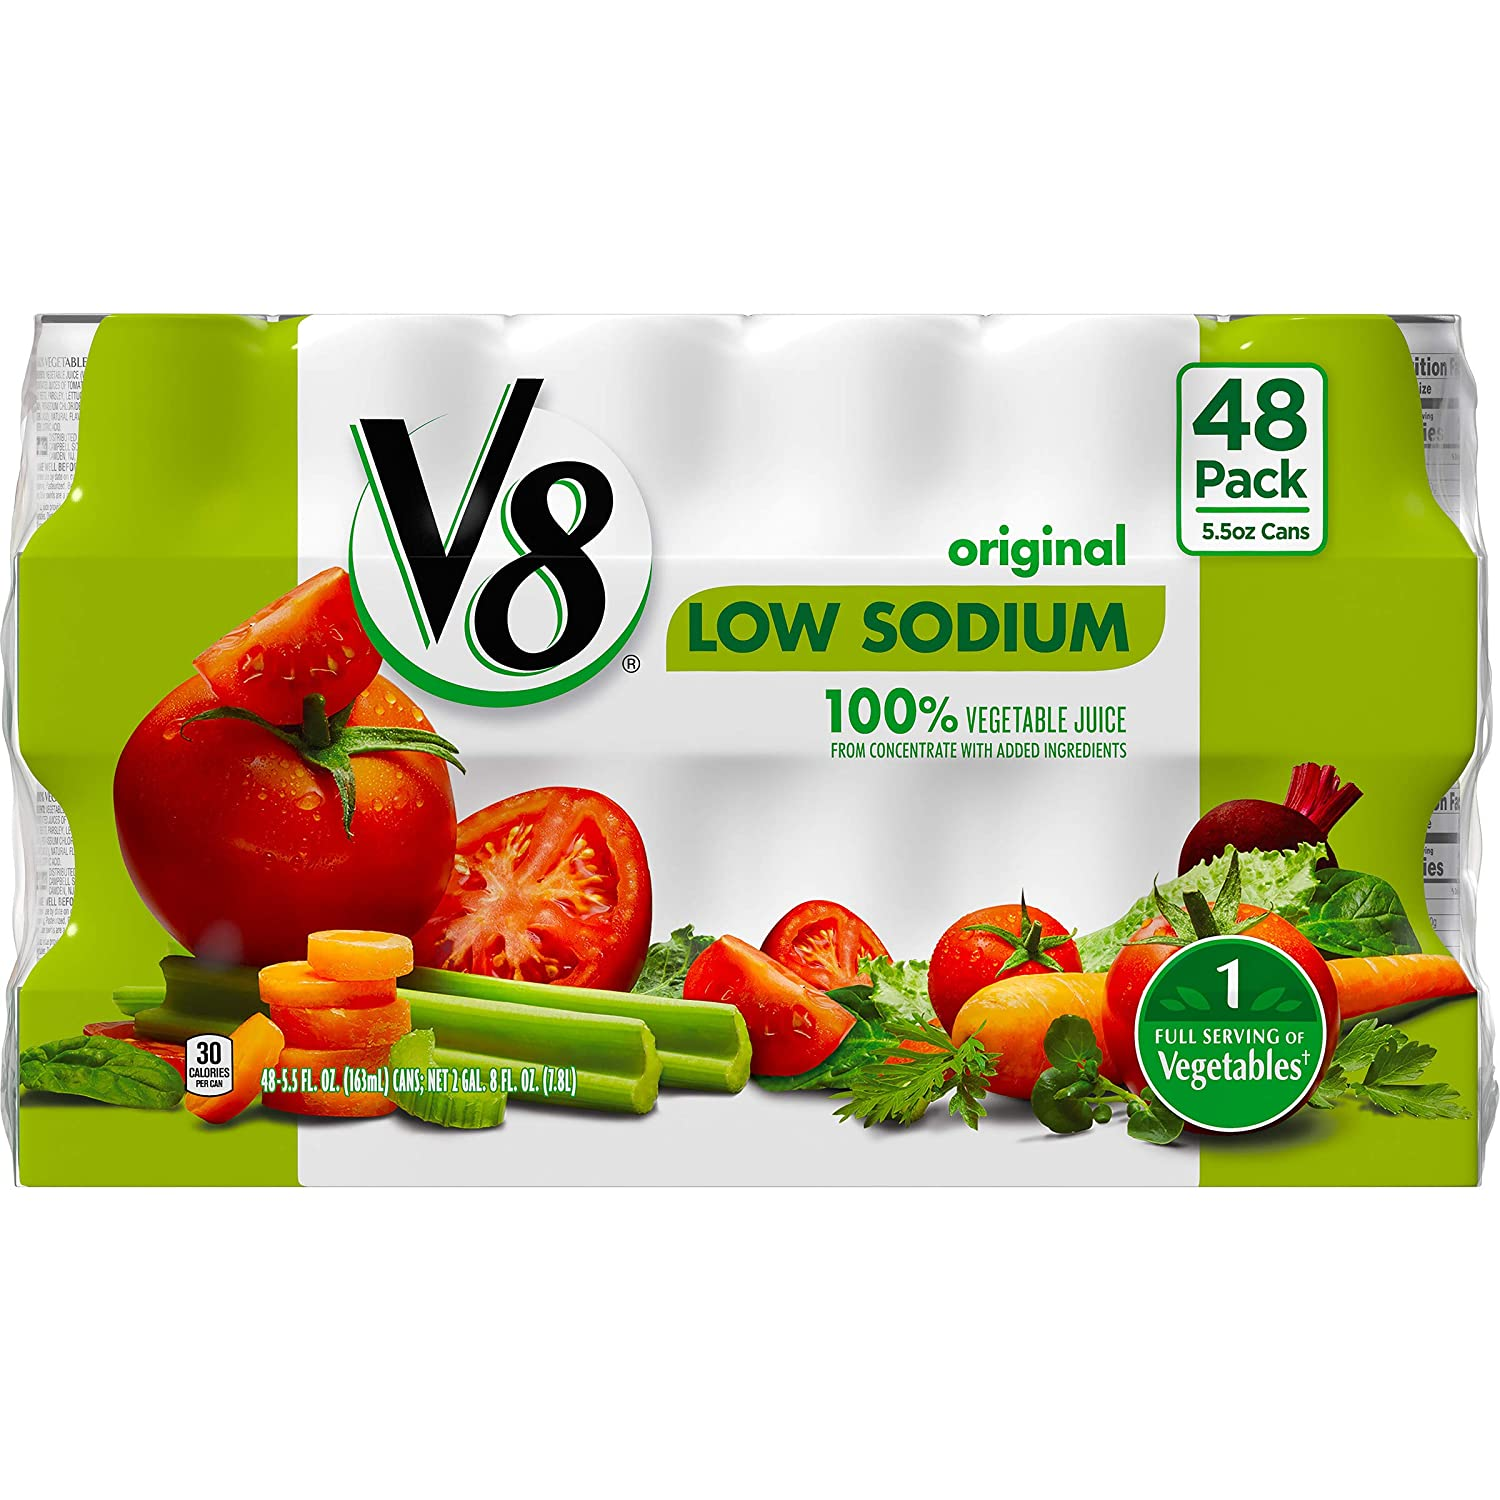 V8 Low Sodium 100% Vegetable Juice, 5.5 oz. can, (Pack of 48)